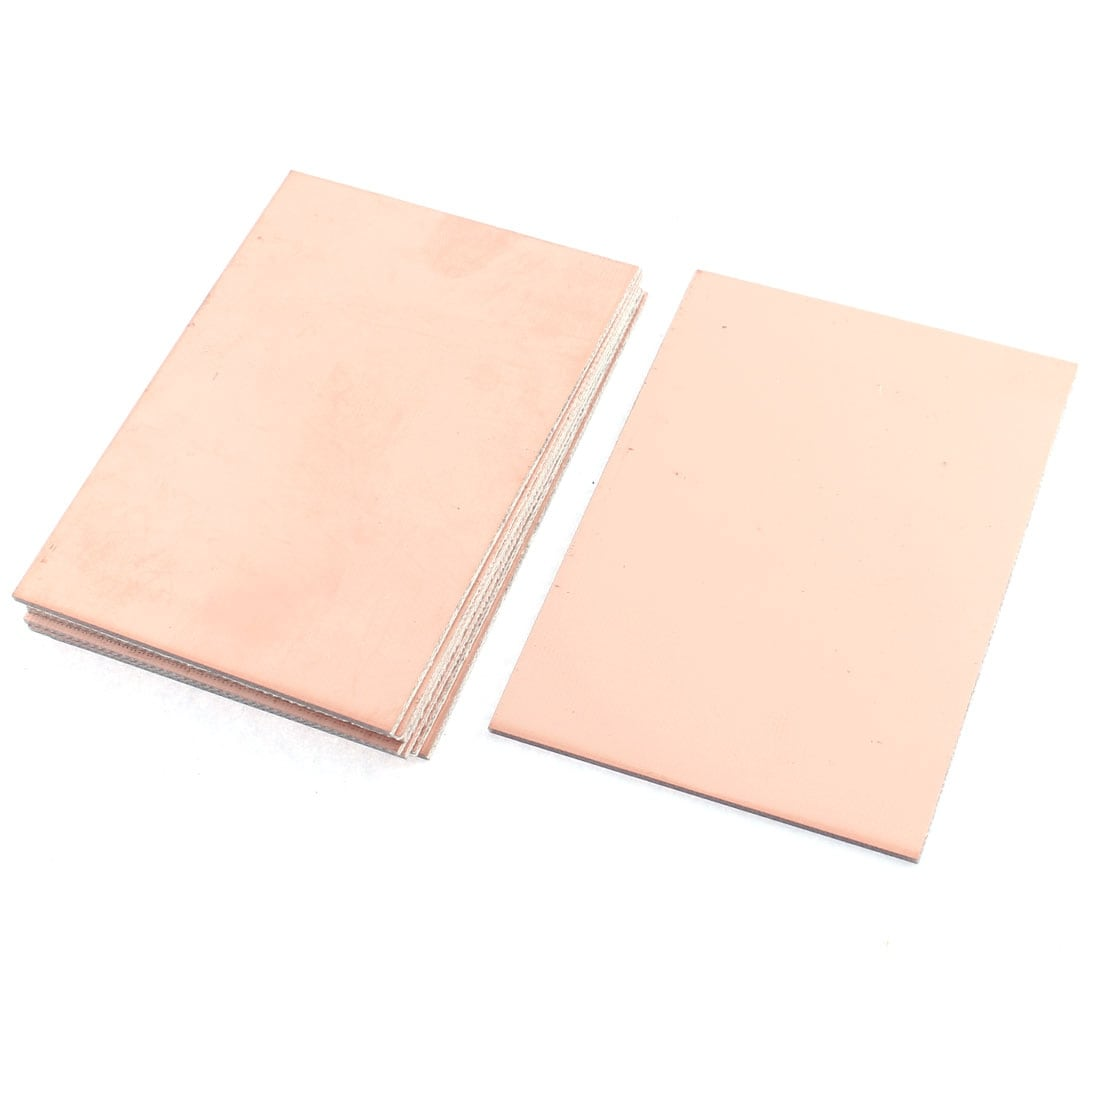 Shop Unique Bargains Fr4 Copper Clad Laminate Pcb Circuit Board 100 Notebook X 70 15mm 8pcs On Sale Free Shipping Orders Over 45